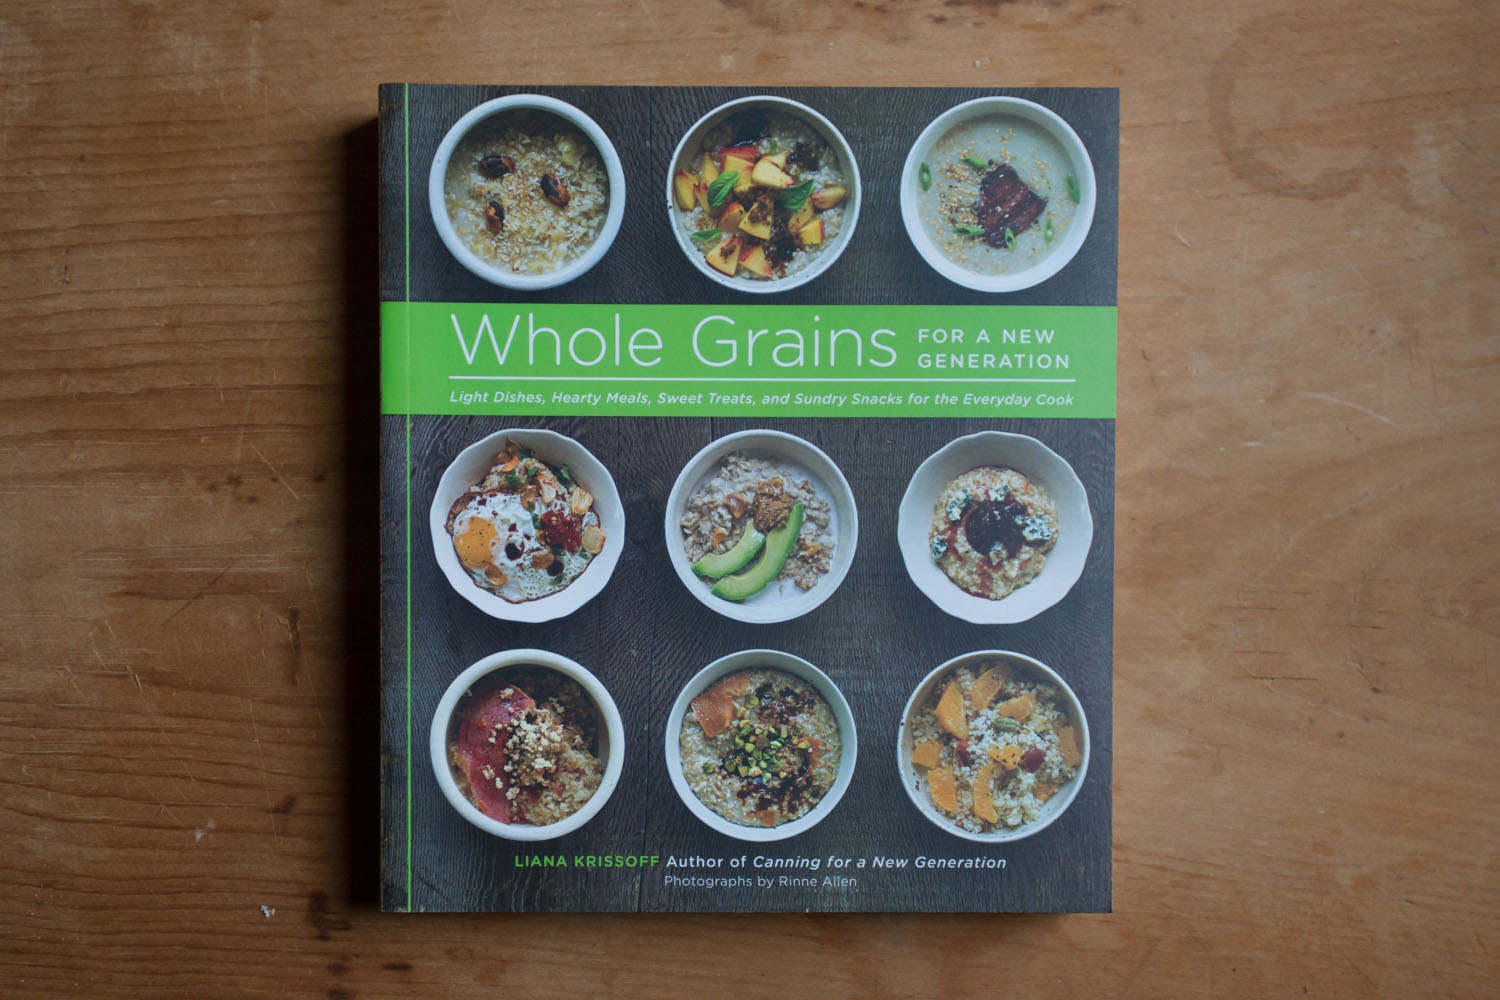 book: whole grains for a new generation